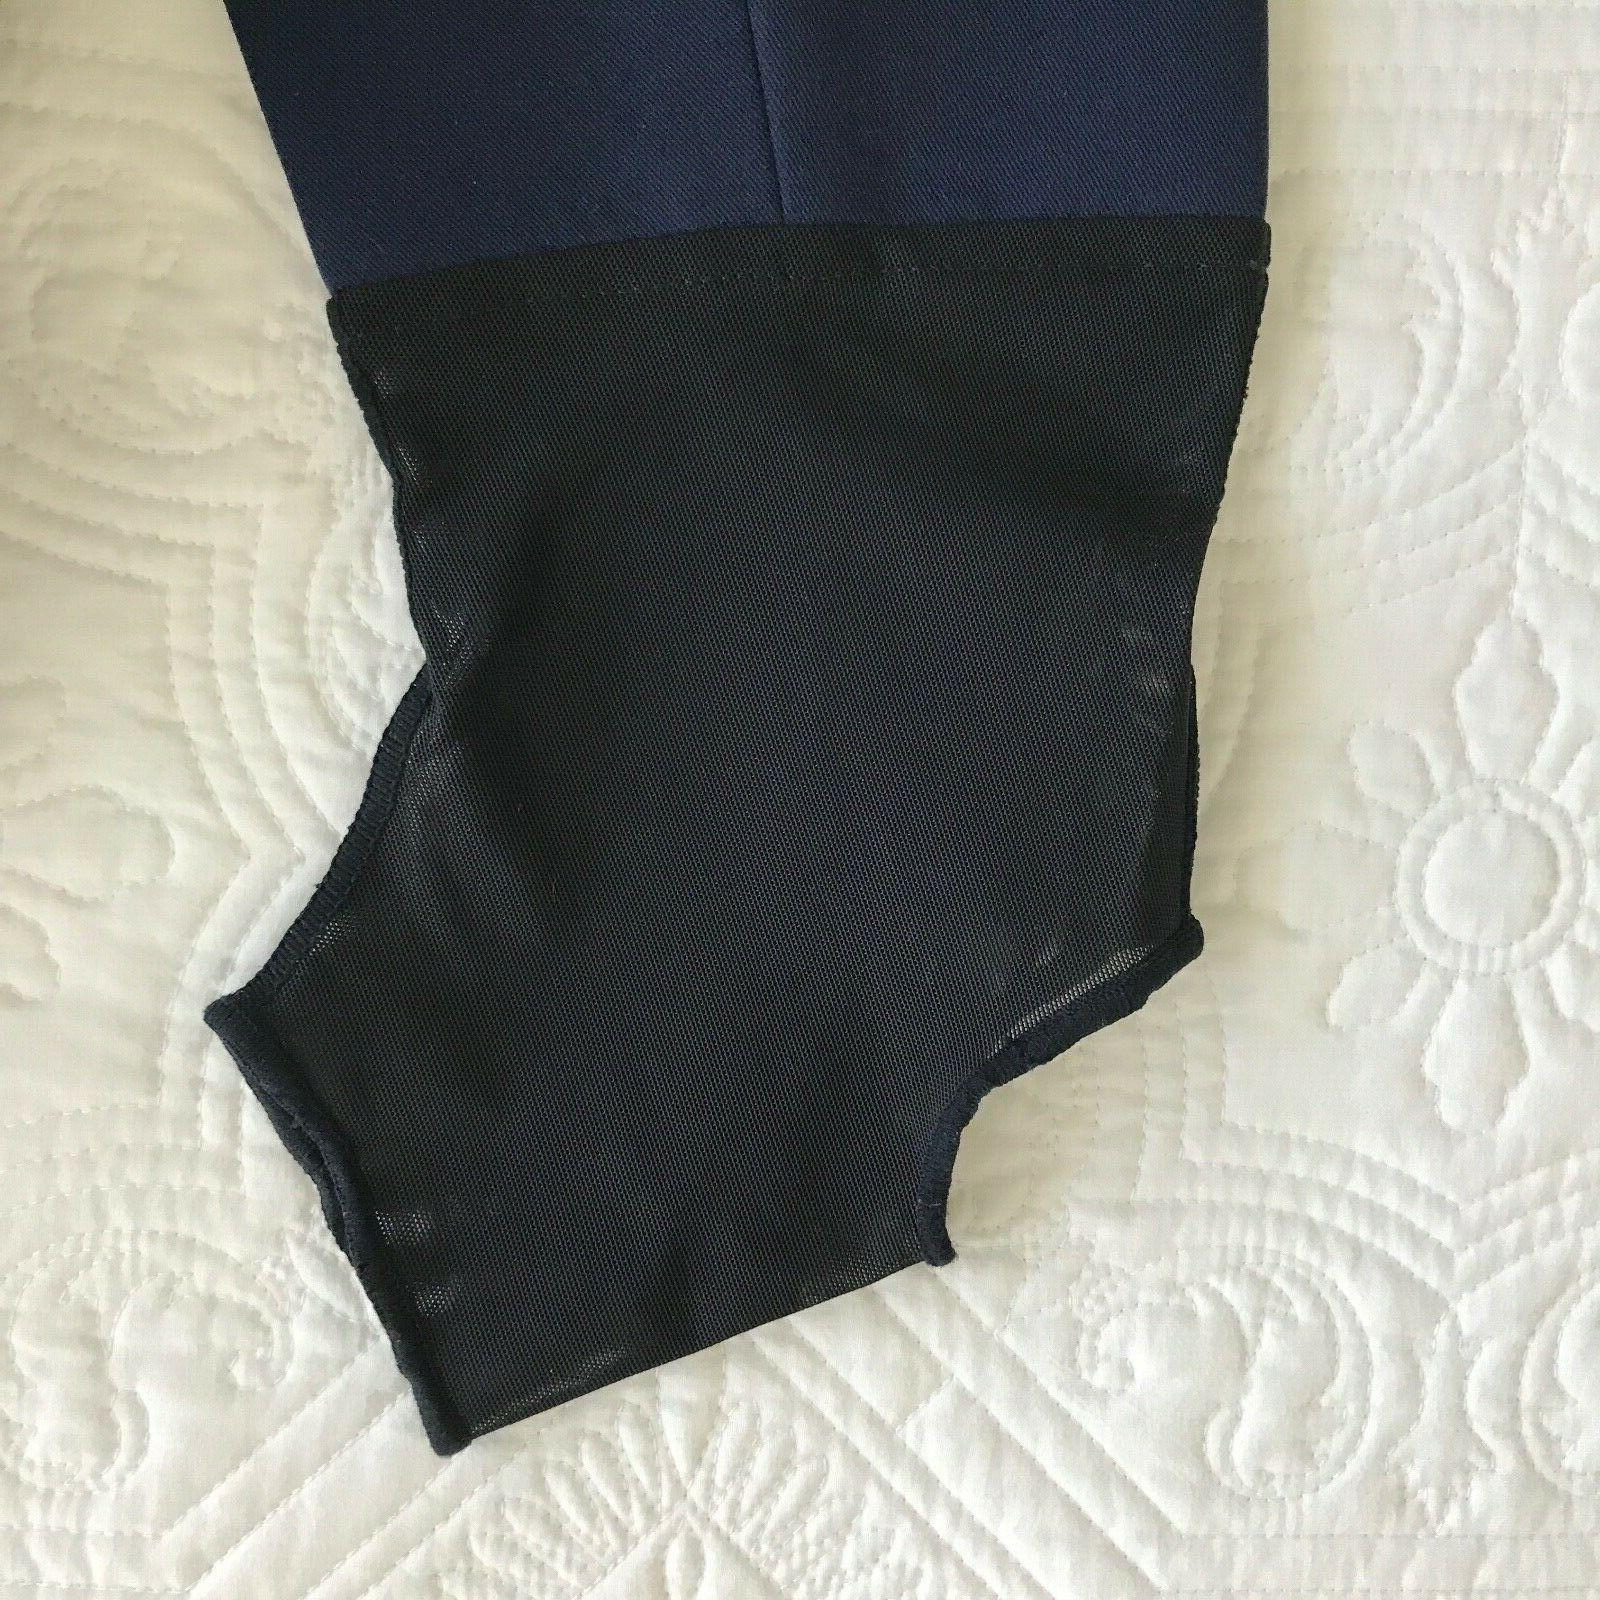 VTG Ski 1350 Navy Wool Blend 10 Regular